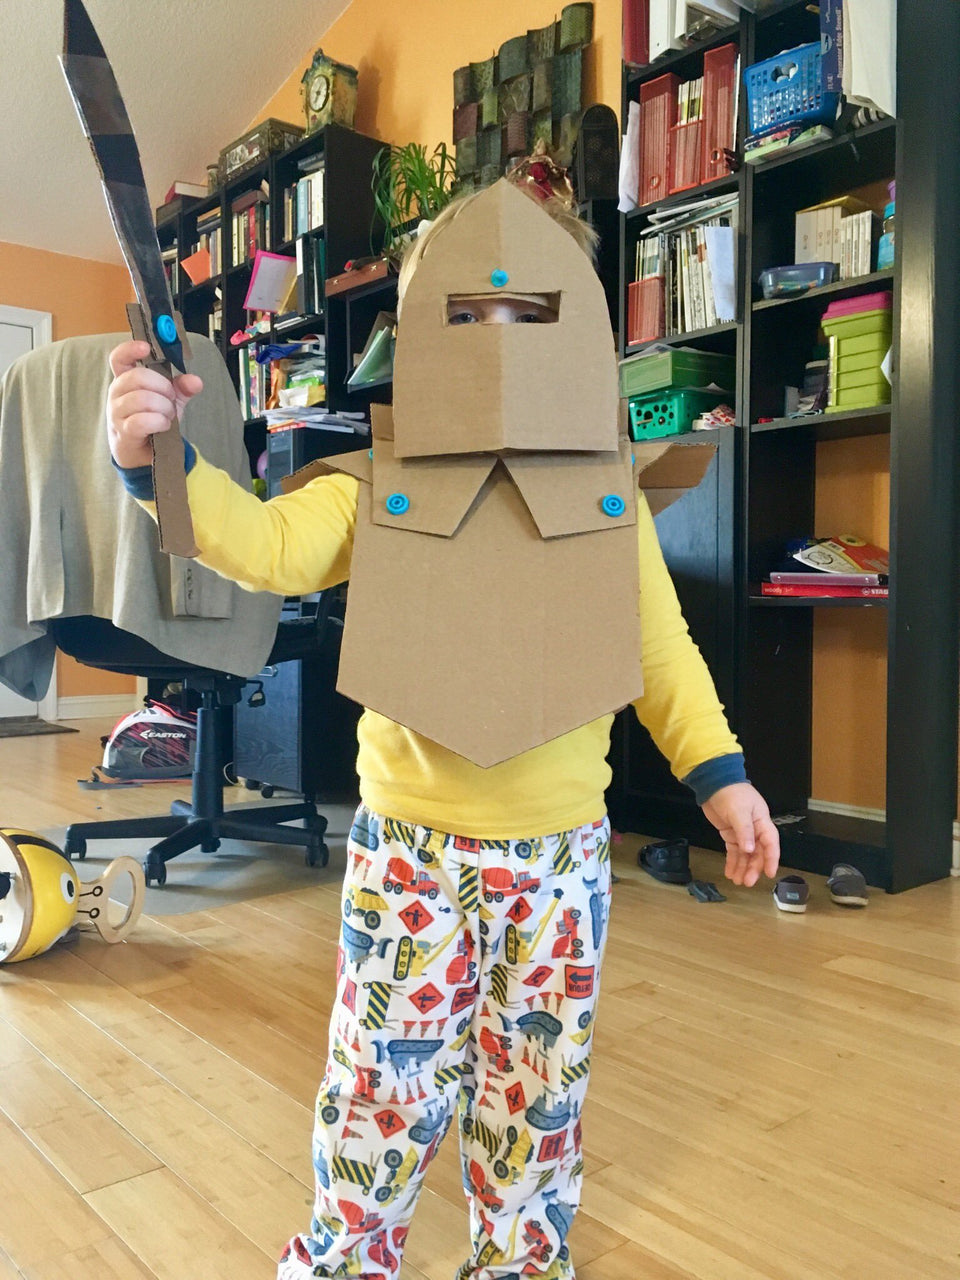 Cardboard armor Makedo construction system